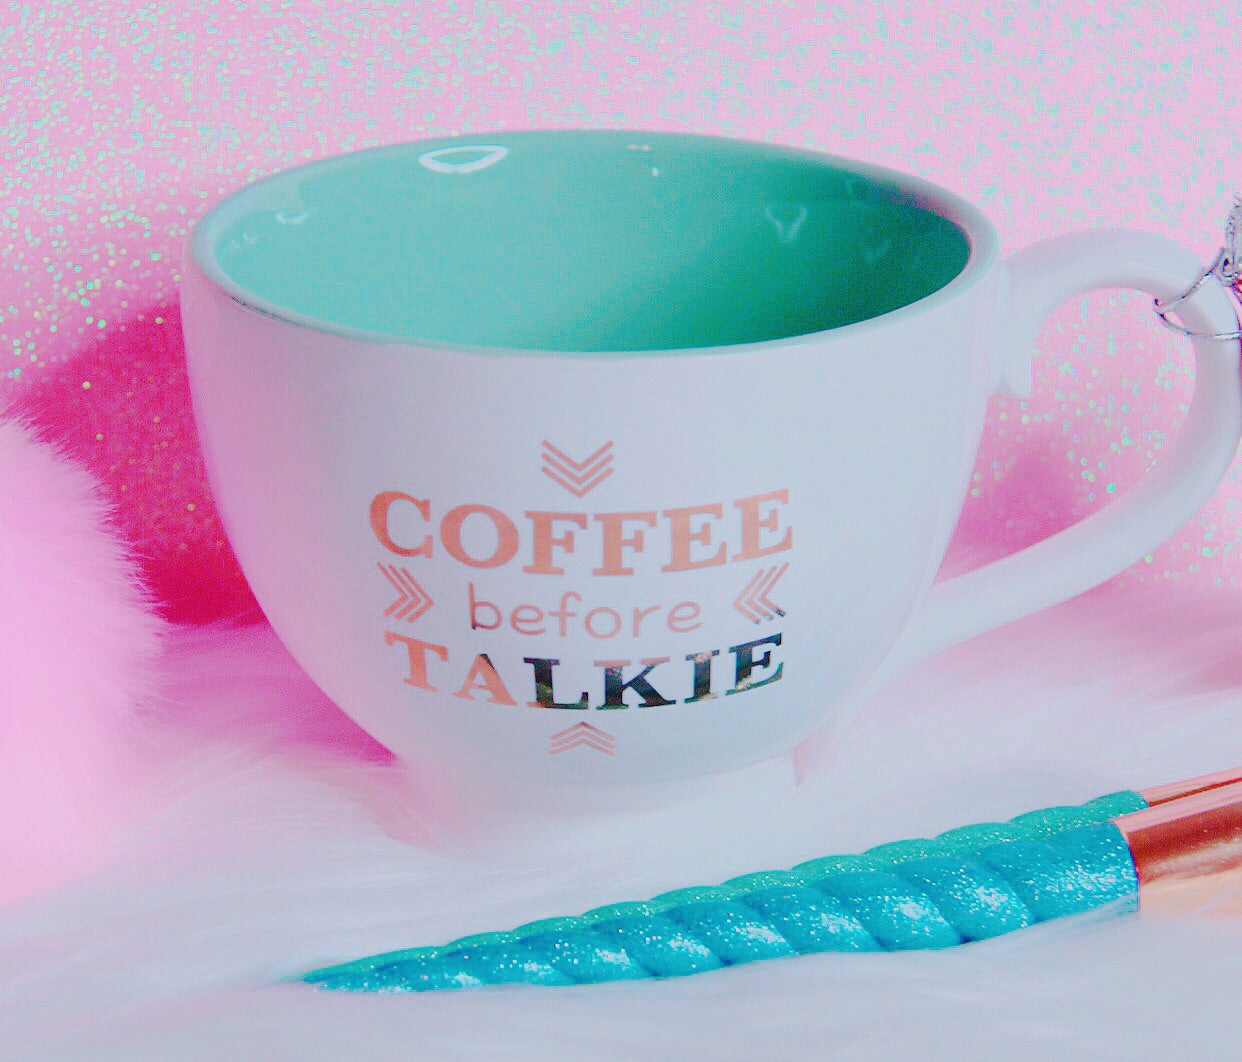 Coffee Before Talkie teal white mug